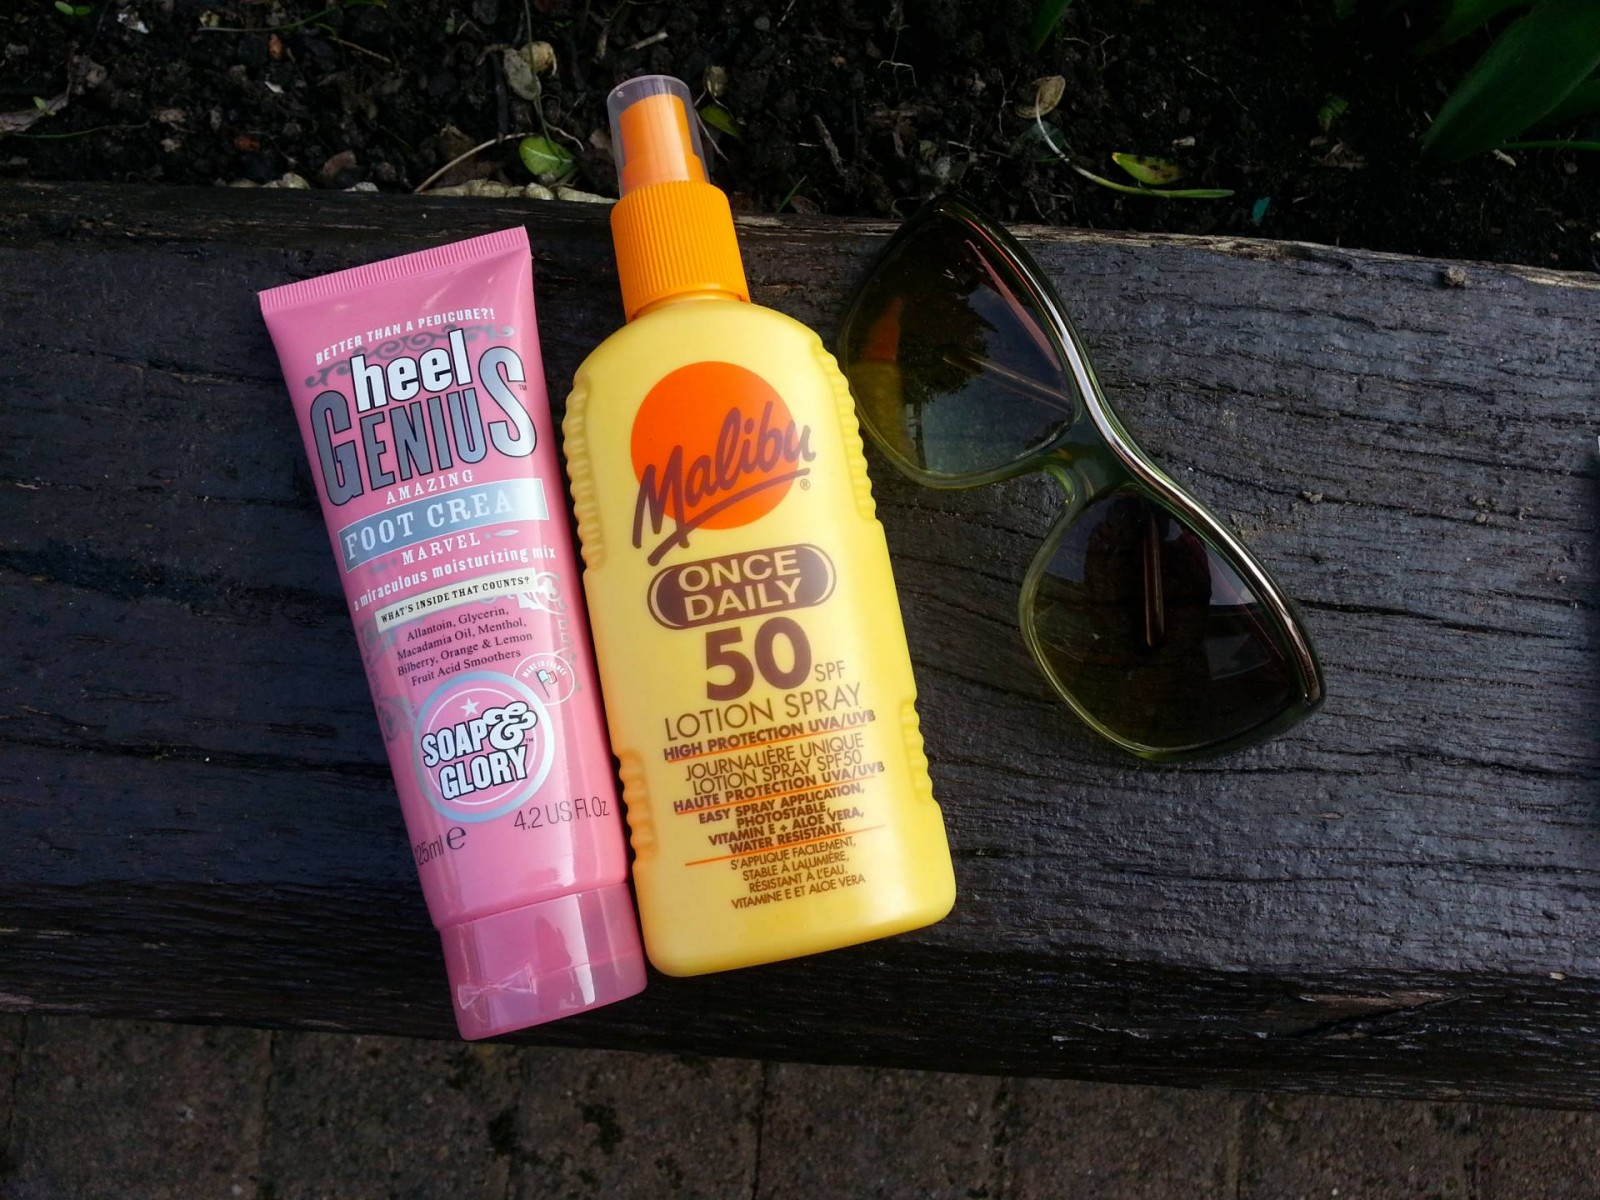 Beauty Essentials for Running Soap and Glory Heel Genius Malibu SPF 50 suncream Salvatore Ferragmo sunglasses